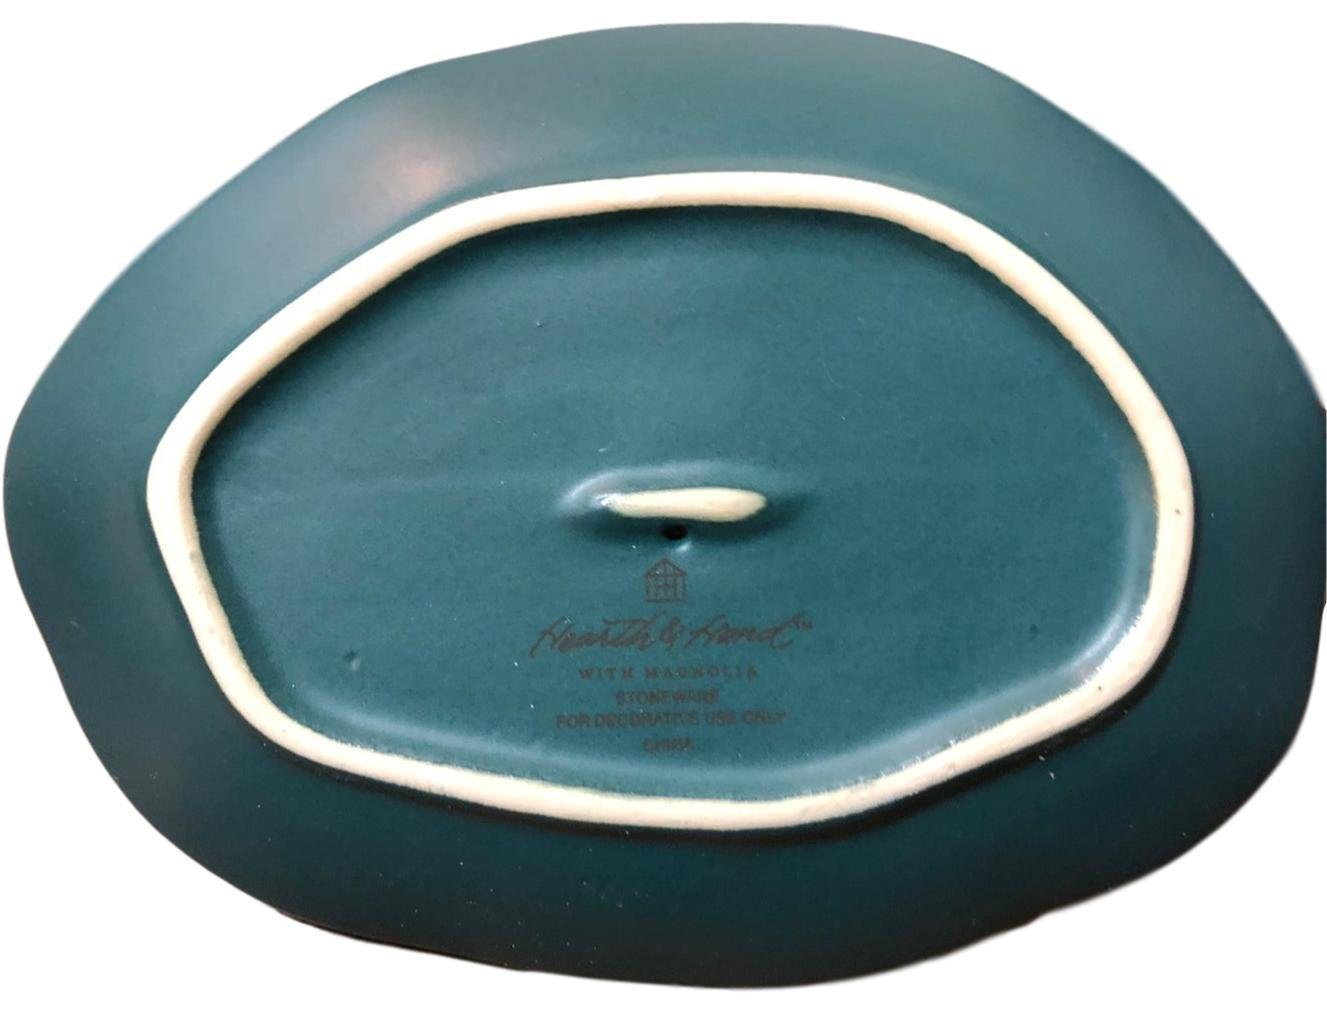 Hearth and Hand Magnolia Ring Tray Stoneware Cream Love Mother Day Collection by Hearth & Hand Magnolia (Image #4)